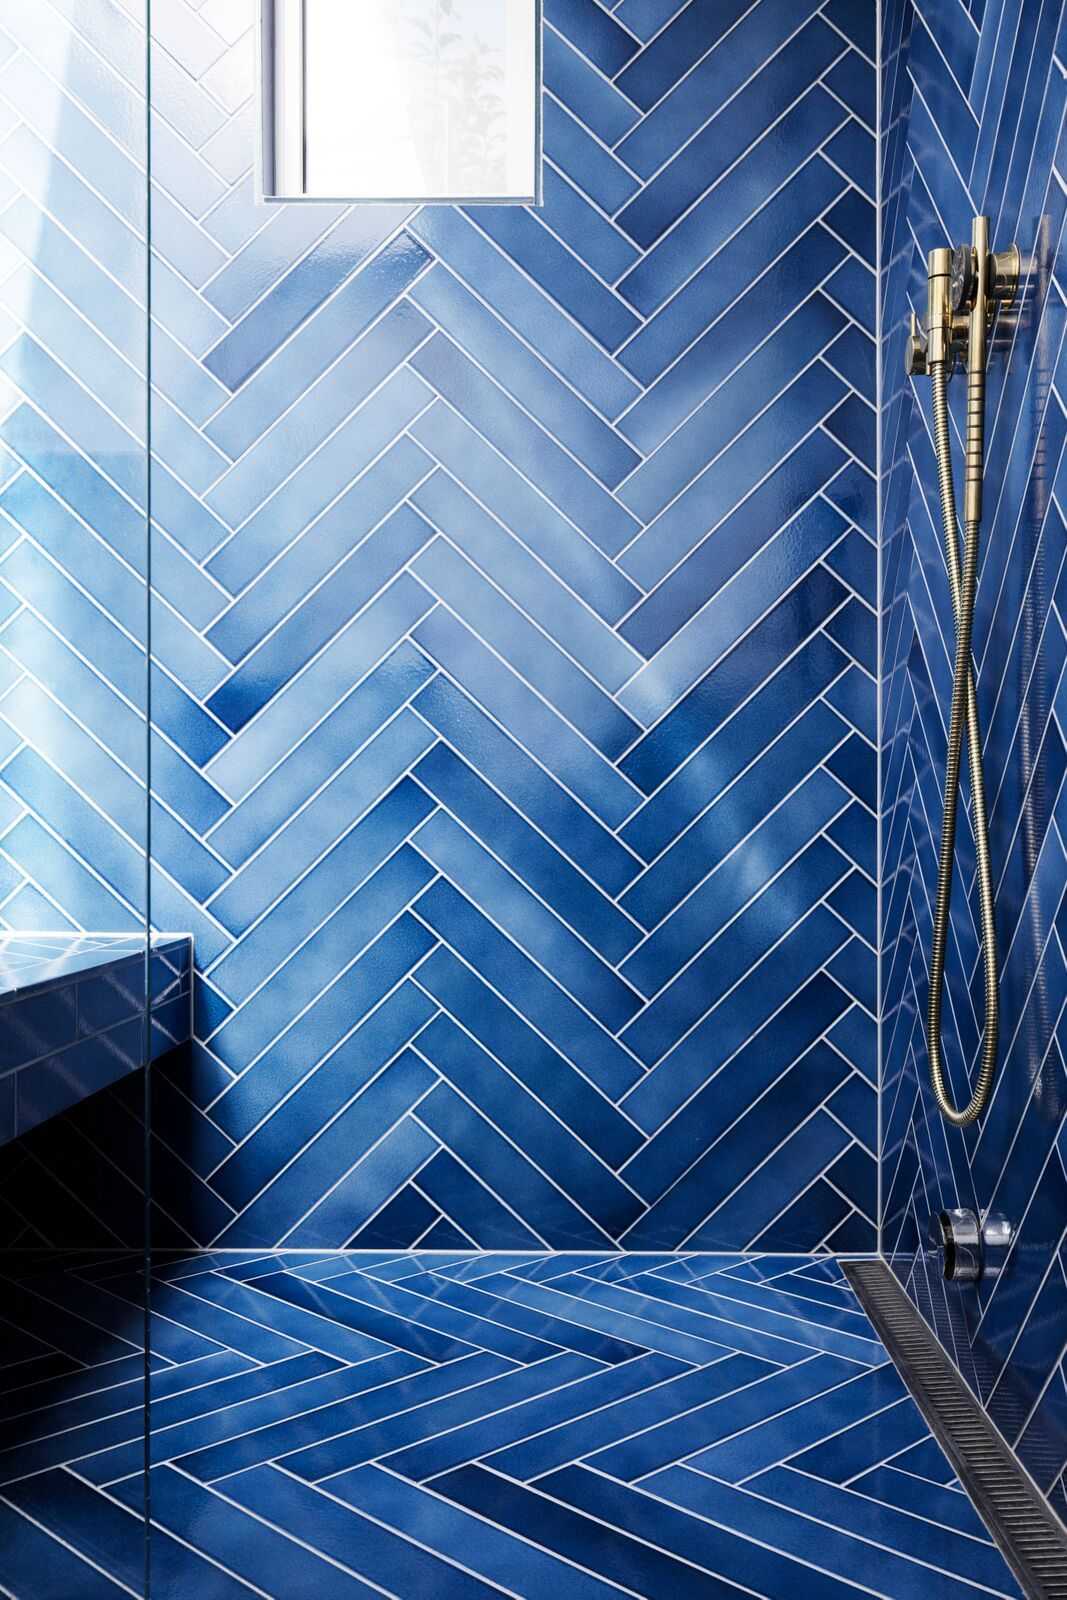 Amazing Blue Shower Made With Made A Mano Cristalli Lava Stone Tiles Small Bathroom Decor Bathroom Tile Designs Bathroom Interior Design